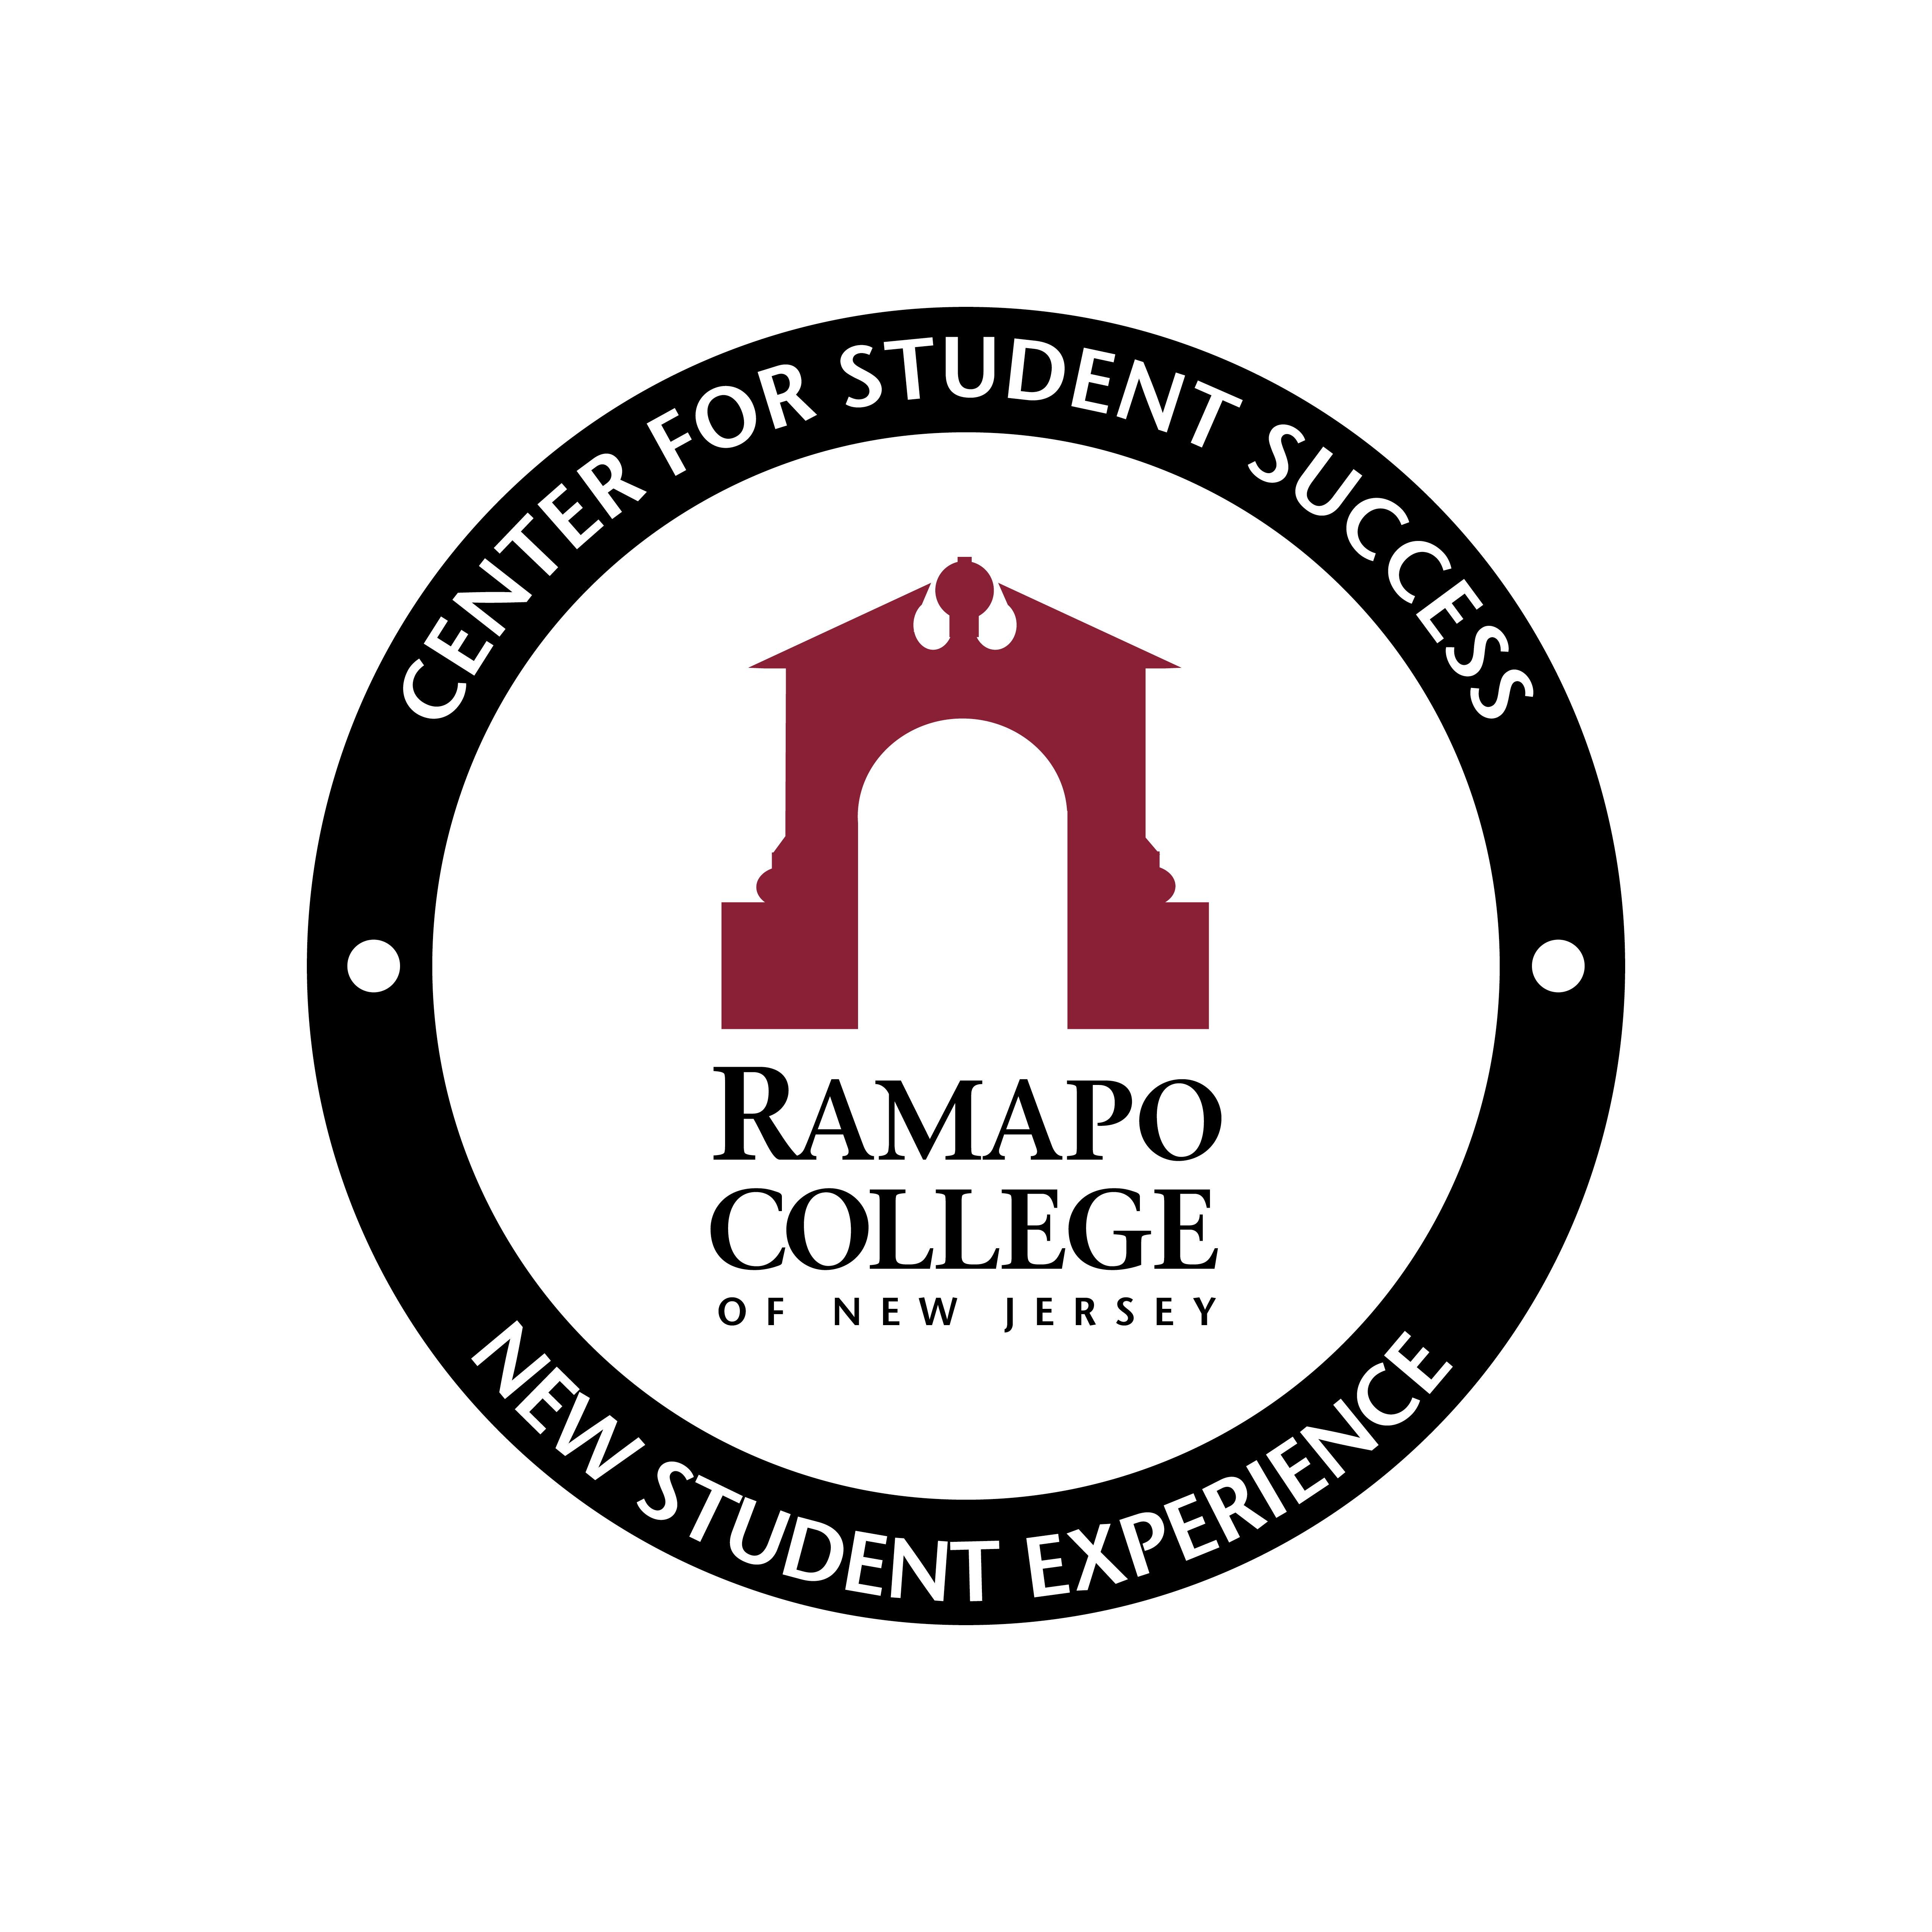 student schedule orientation programs ramapo college of new jersey